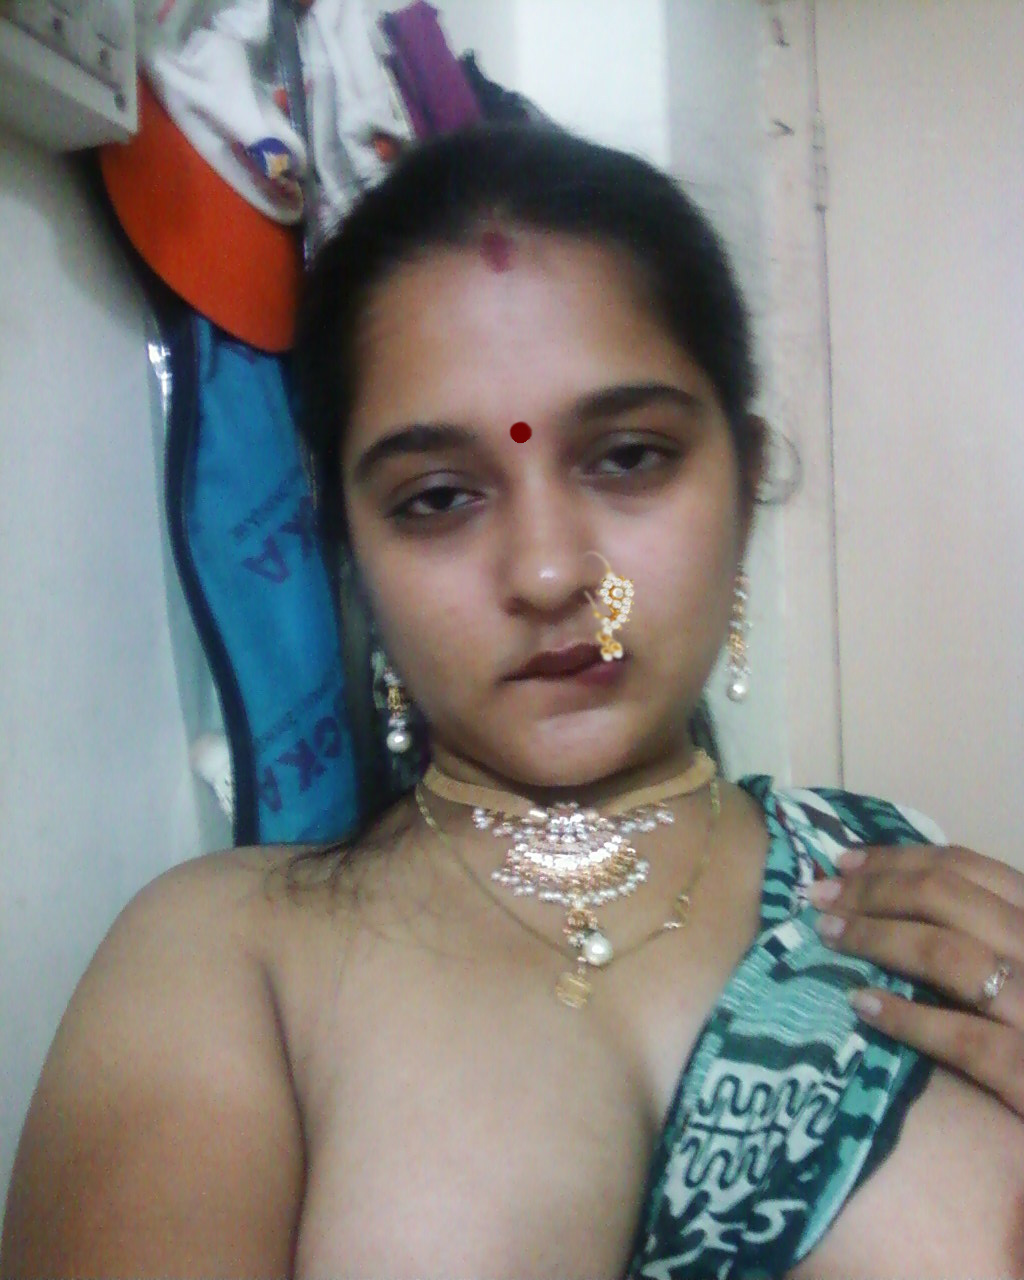 To Hot Desi Bhabhi With Big Boobs And Shaved Pussy Naked Pics